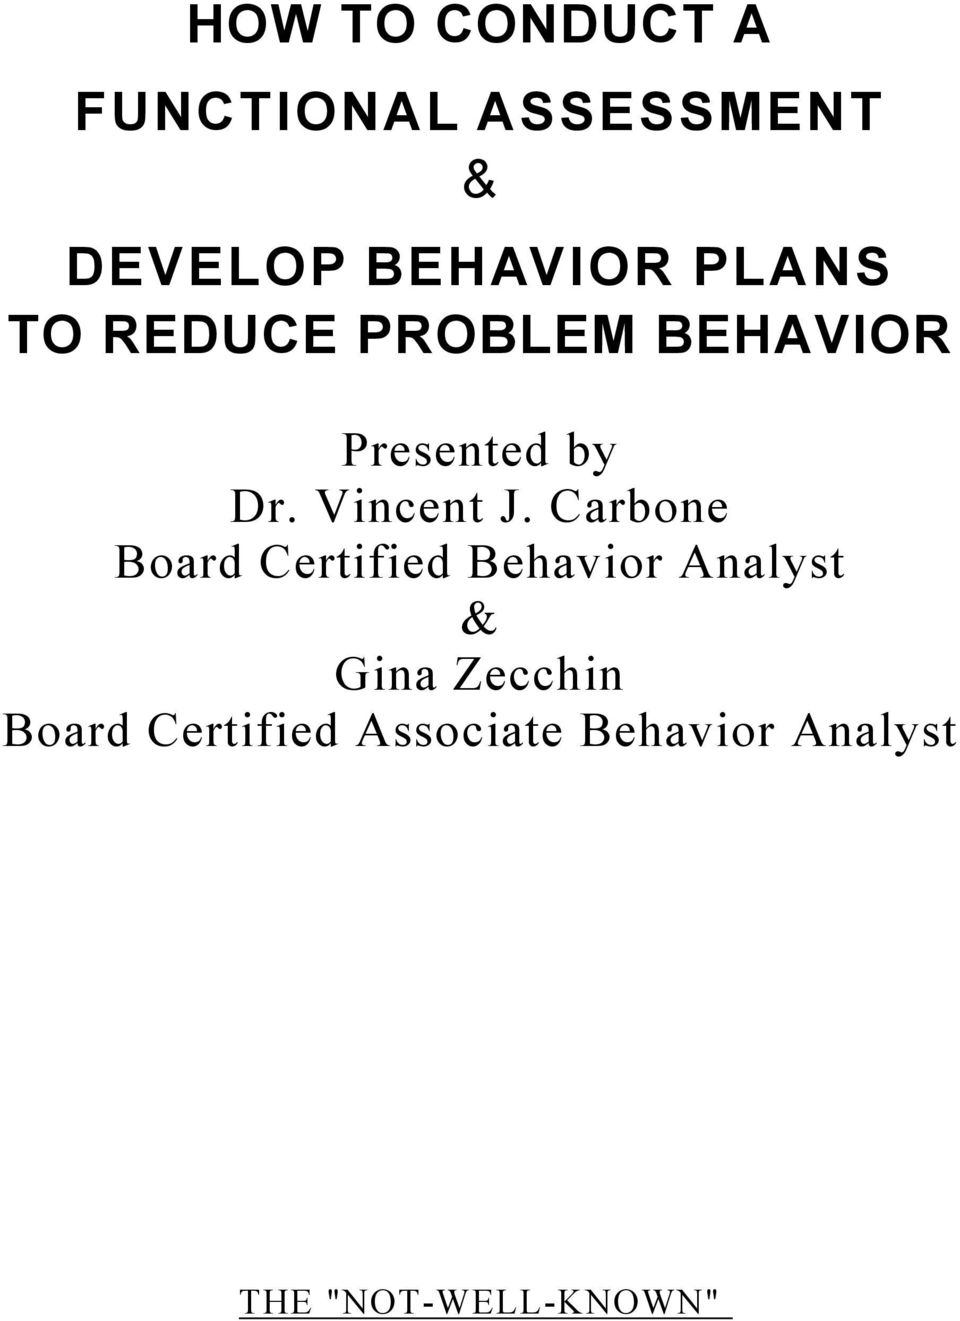 Carbone Board Certified Behavior Analyst & Gina Zecchin